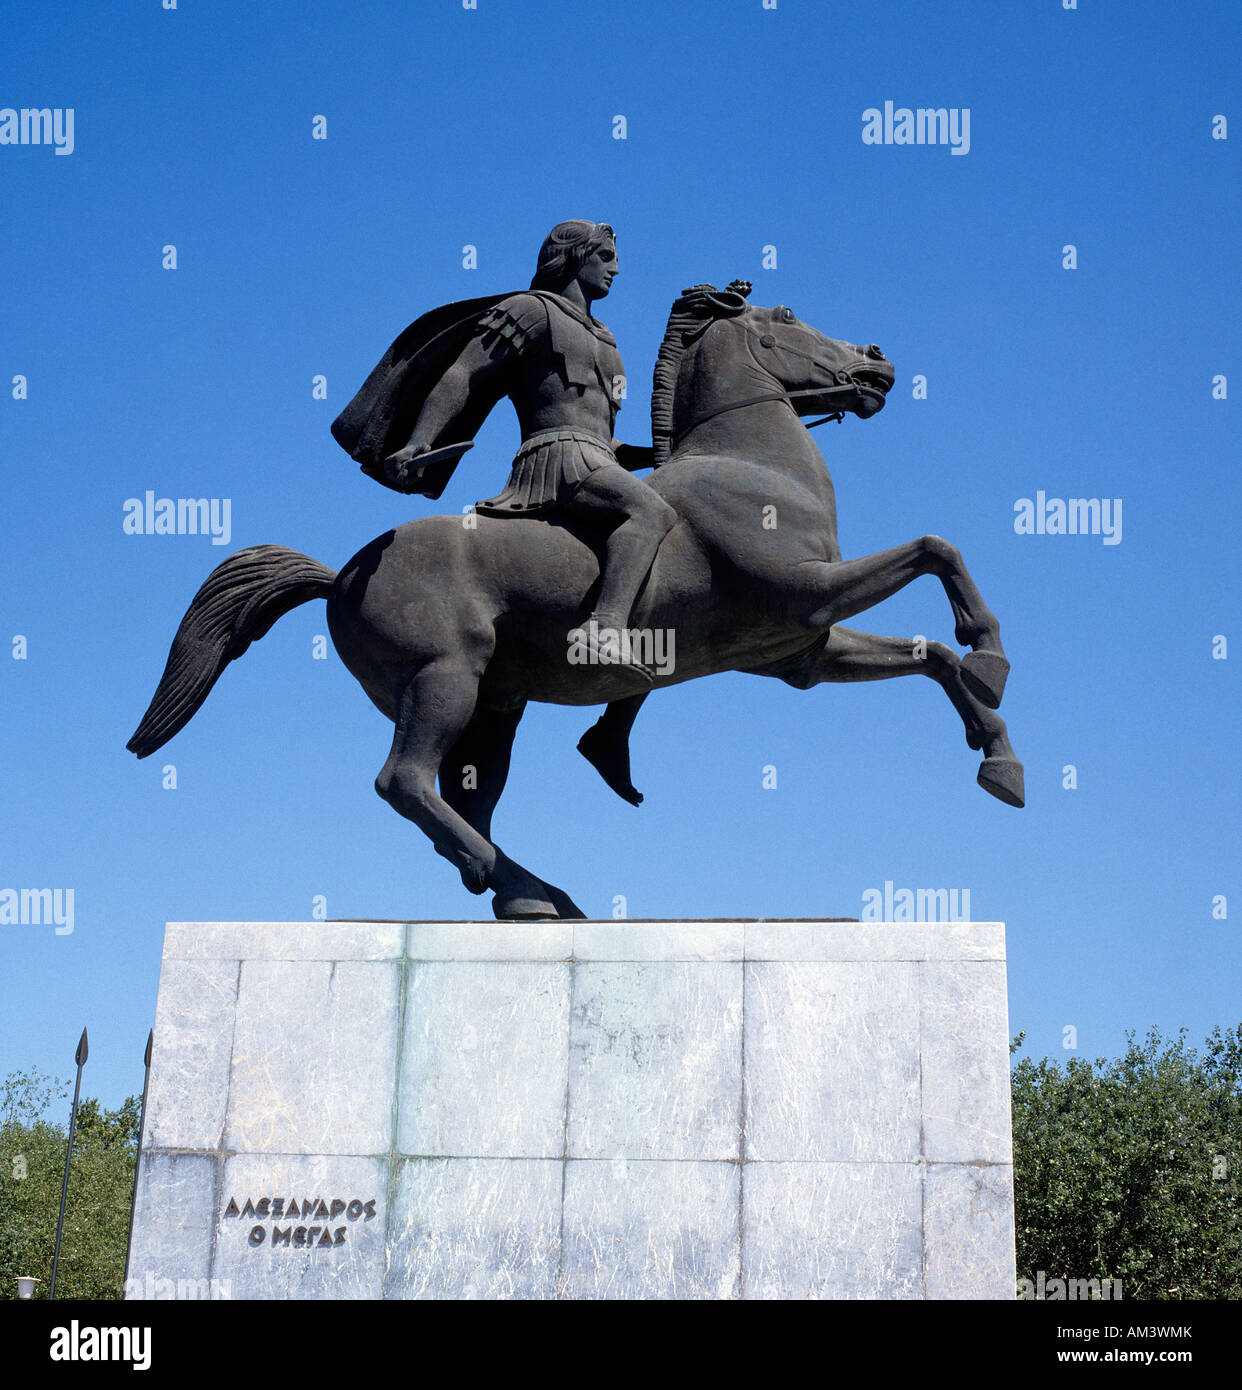 Equestrian Statue of Alexander the Great at Thessaloniki Greece - Stock Image